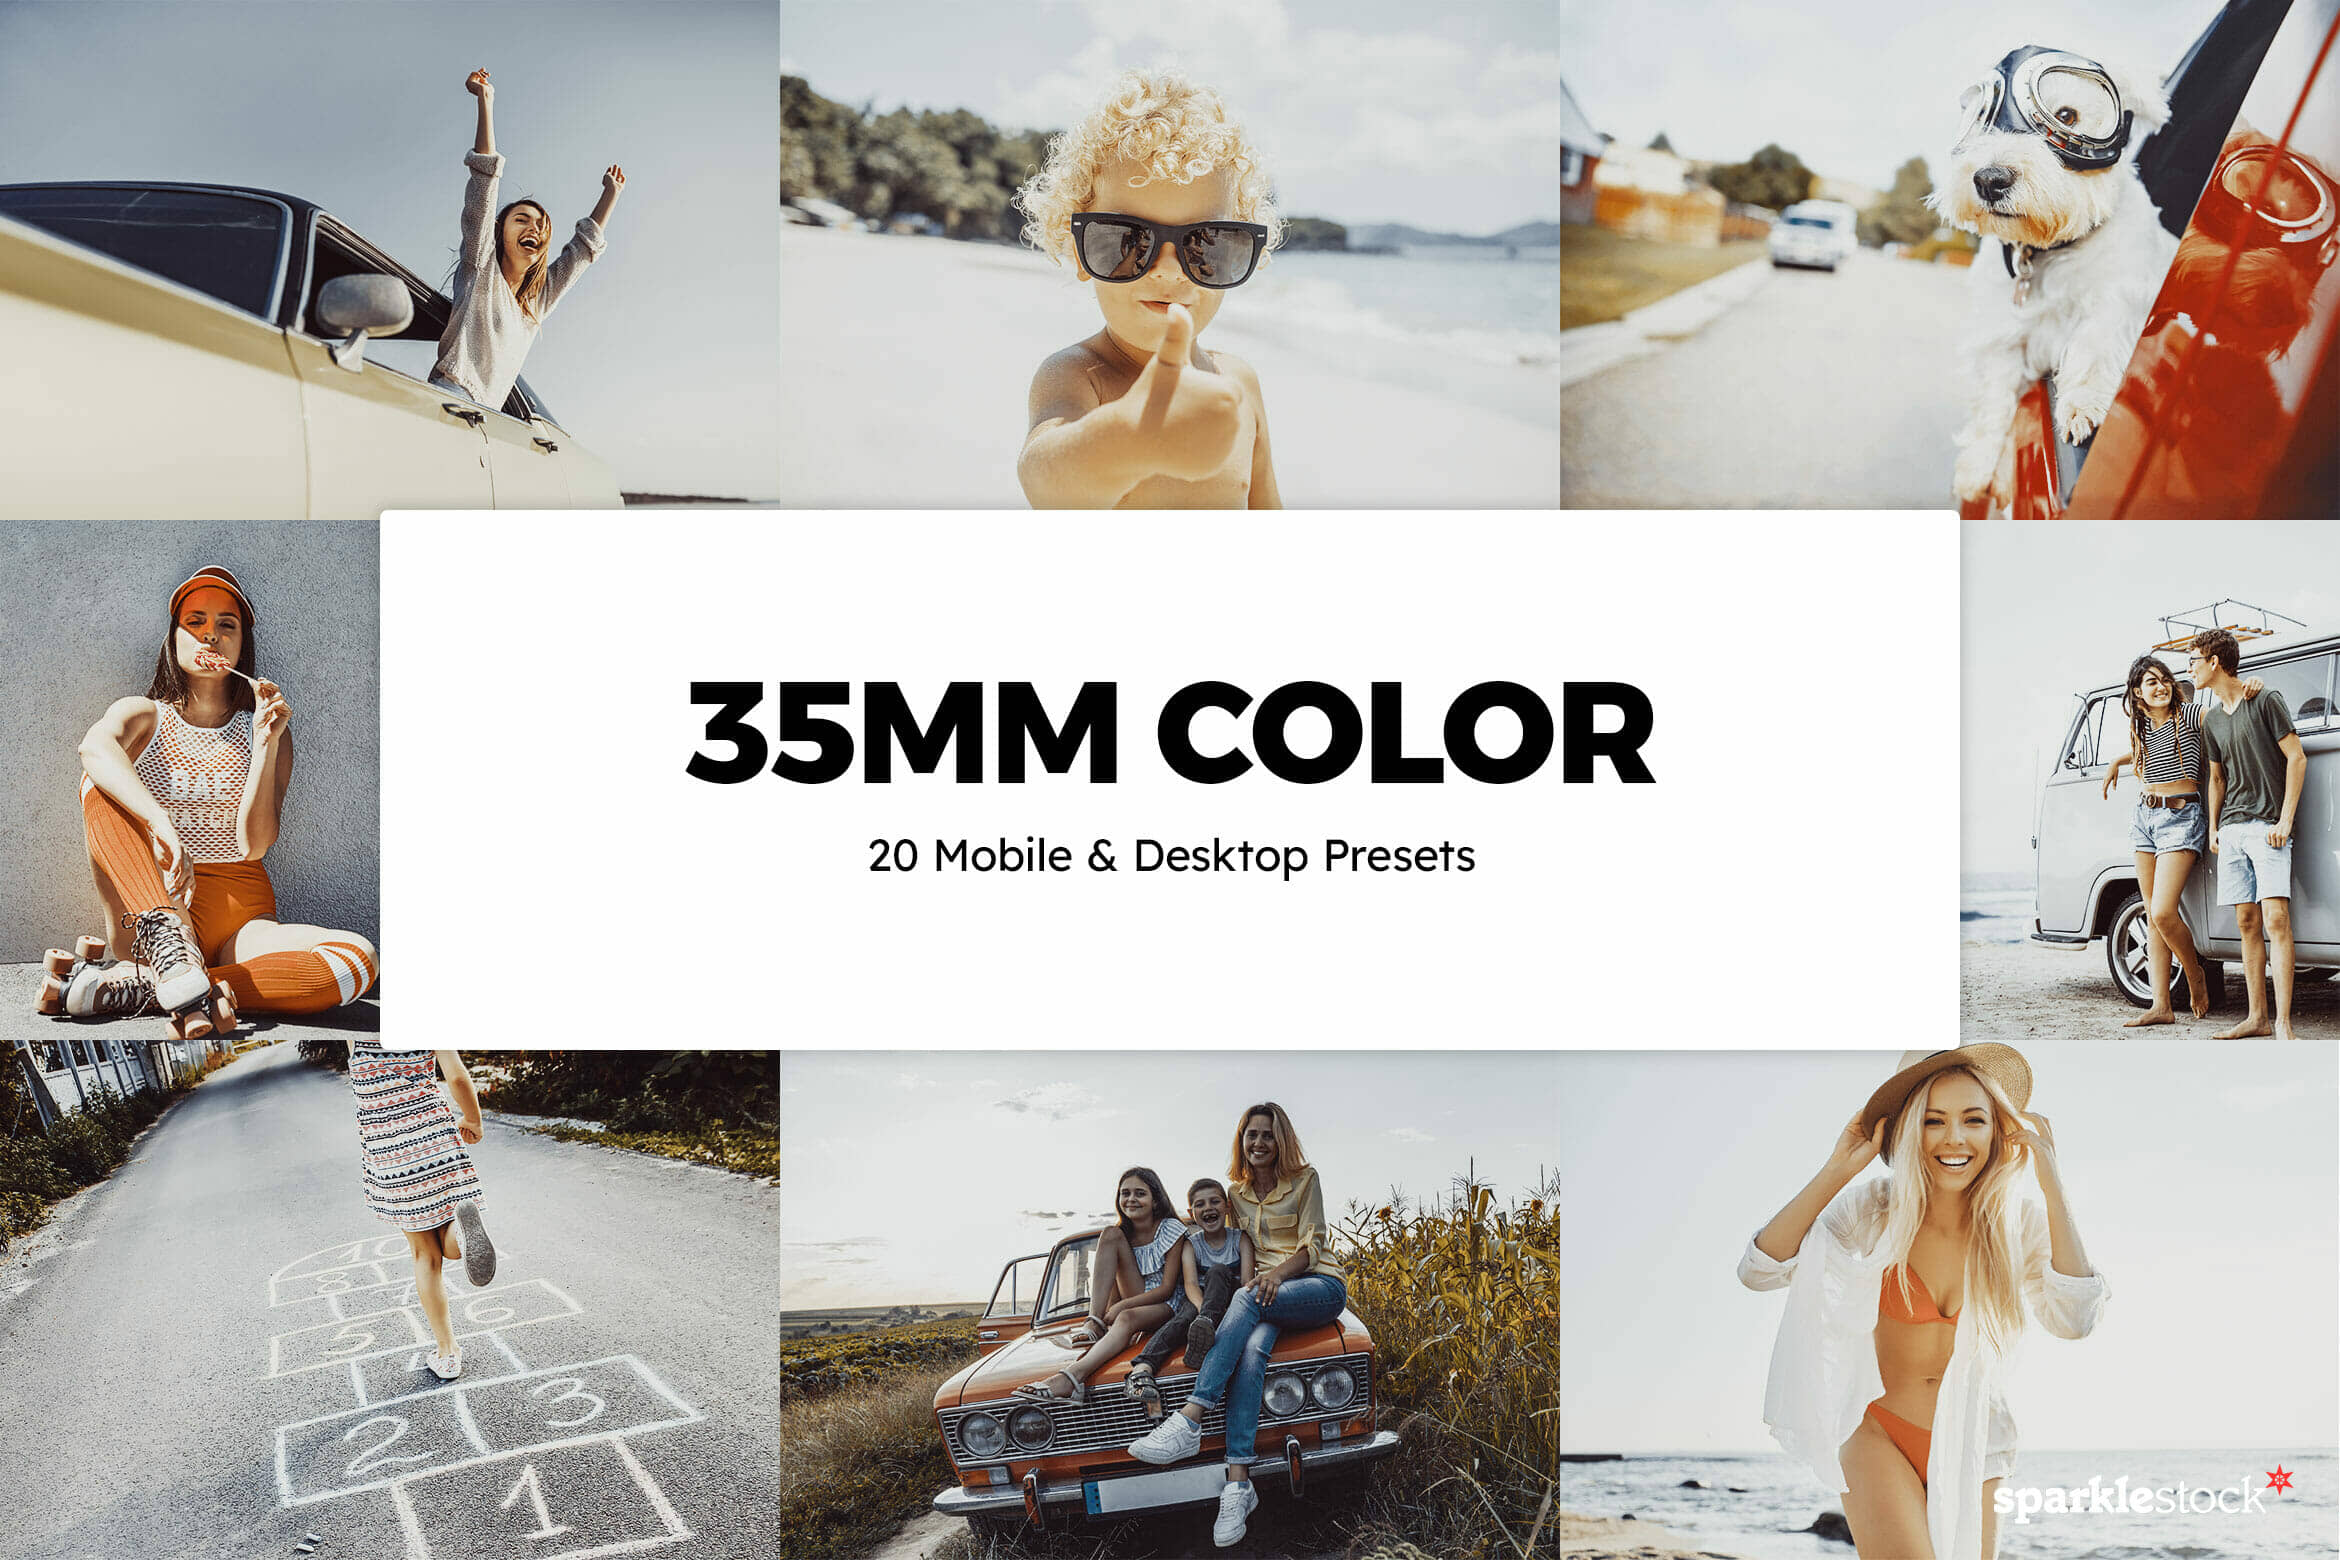 8 Free 35mm Color Lightroom Presets and LUTs